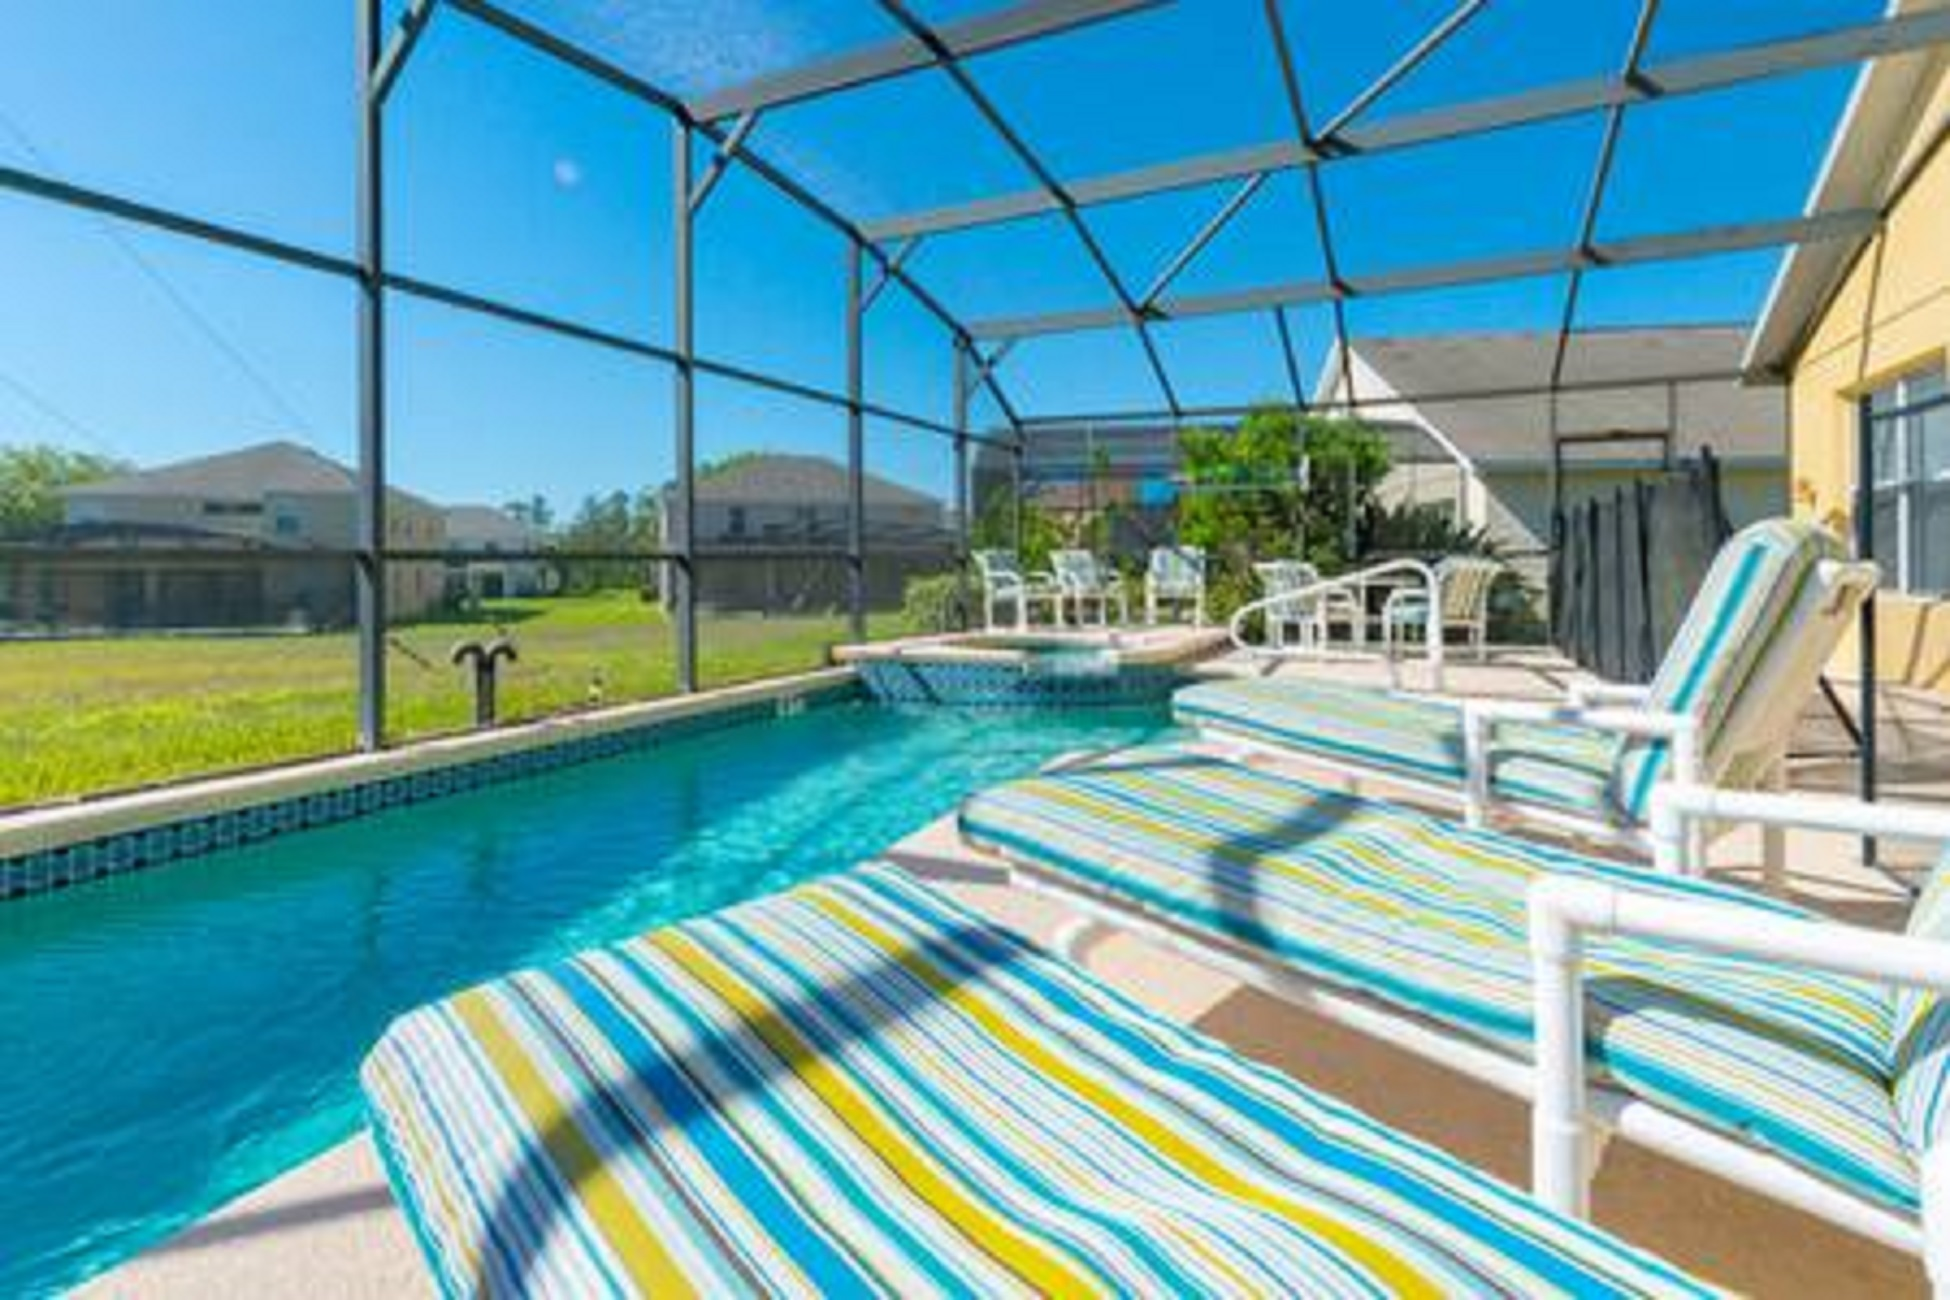 Disabled Friendly Pool Home-122951